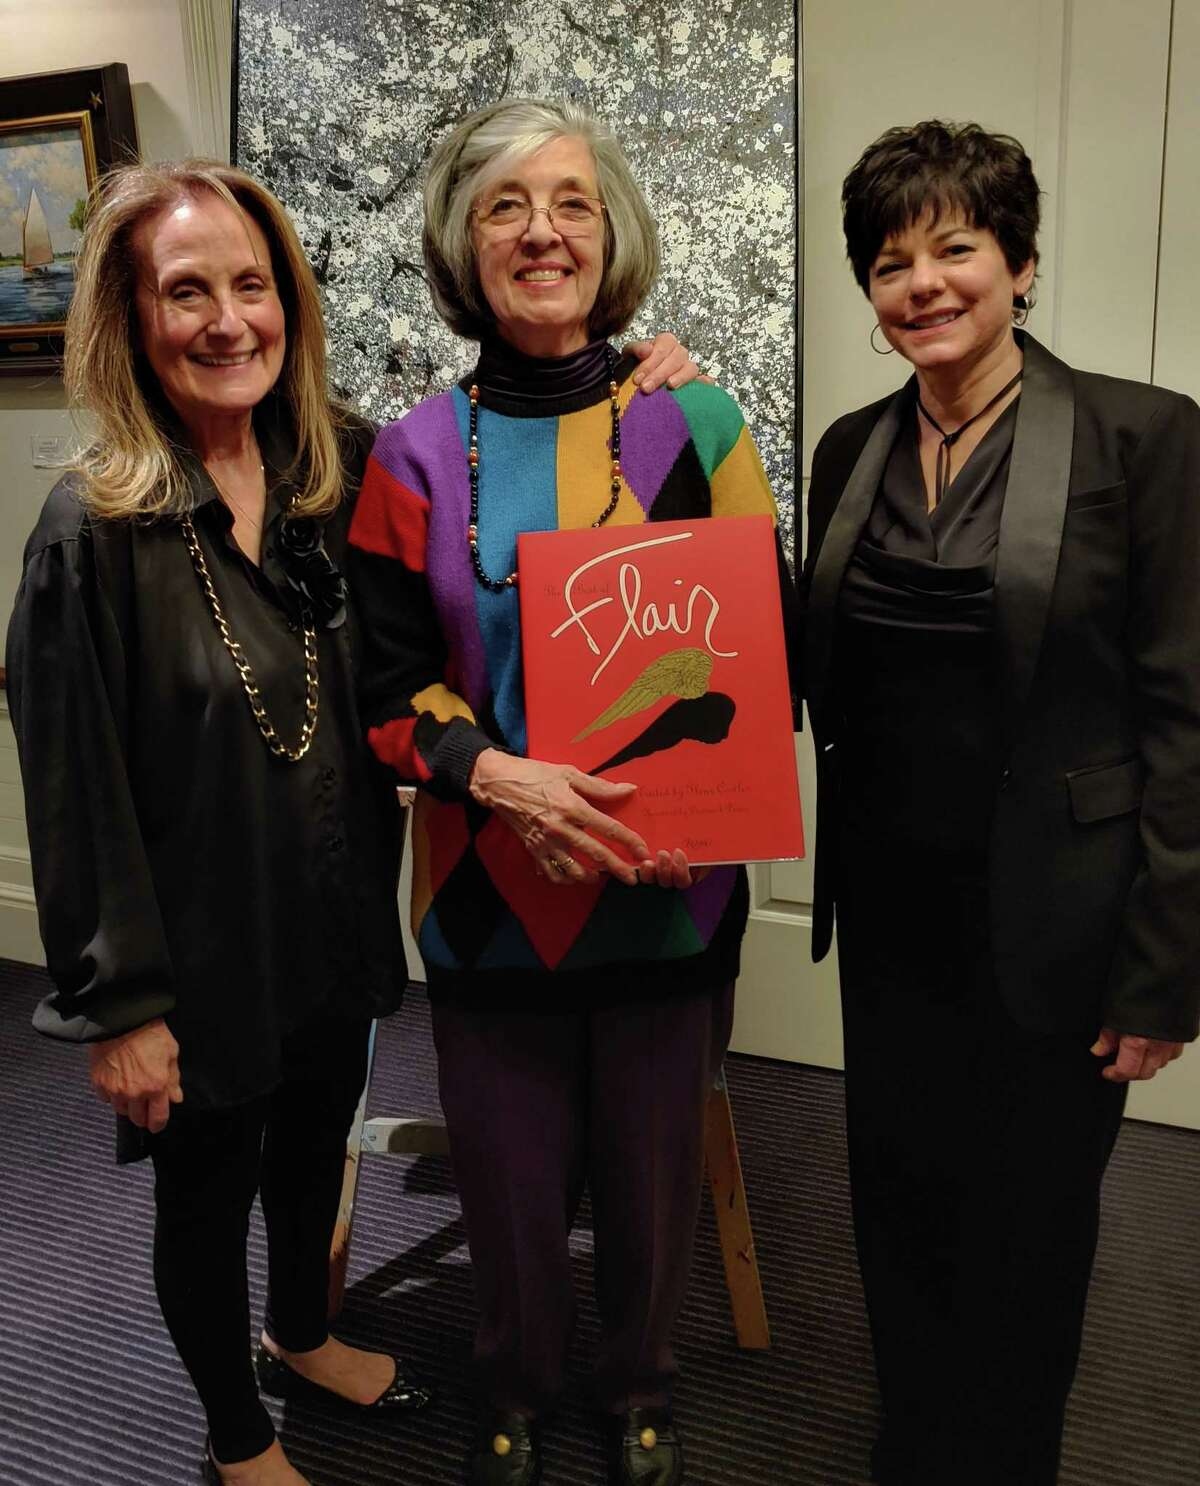 Suzanne Simpson, center, received the Art Society of Old Greenwich's JohnTatge Memorial Volunteer of the Year Award Feb. 21 at ASOG's 2020 Winterfest dinner and art show at the Riverside Yacht Club. ASOG co-presidents Elaine Conner, left, and Julie DiBiase presented the award for Simpson's exceptional volunteer service in chairing the 2019 ASOG Sidewalk Show and Sale.